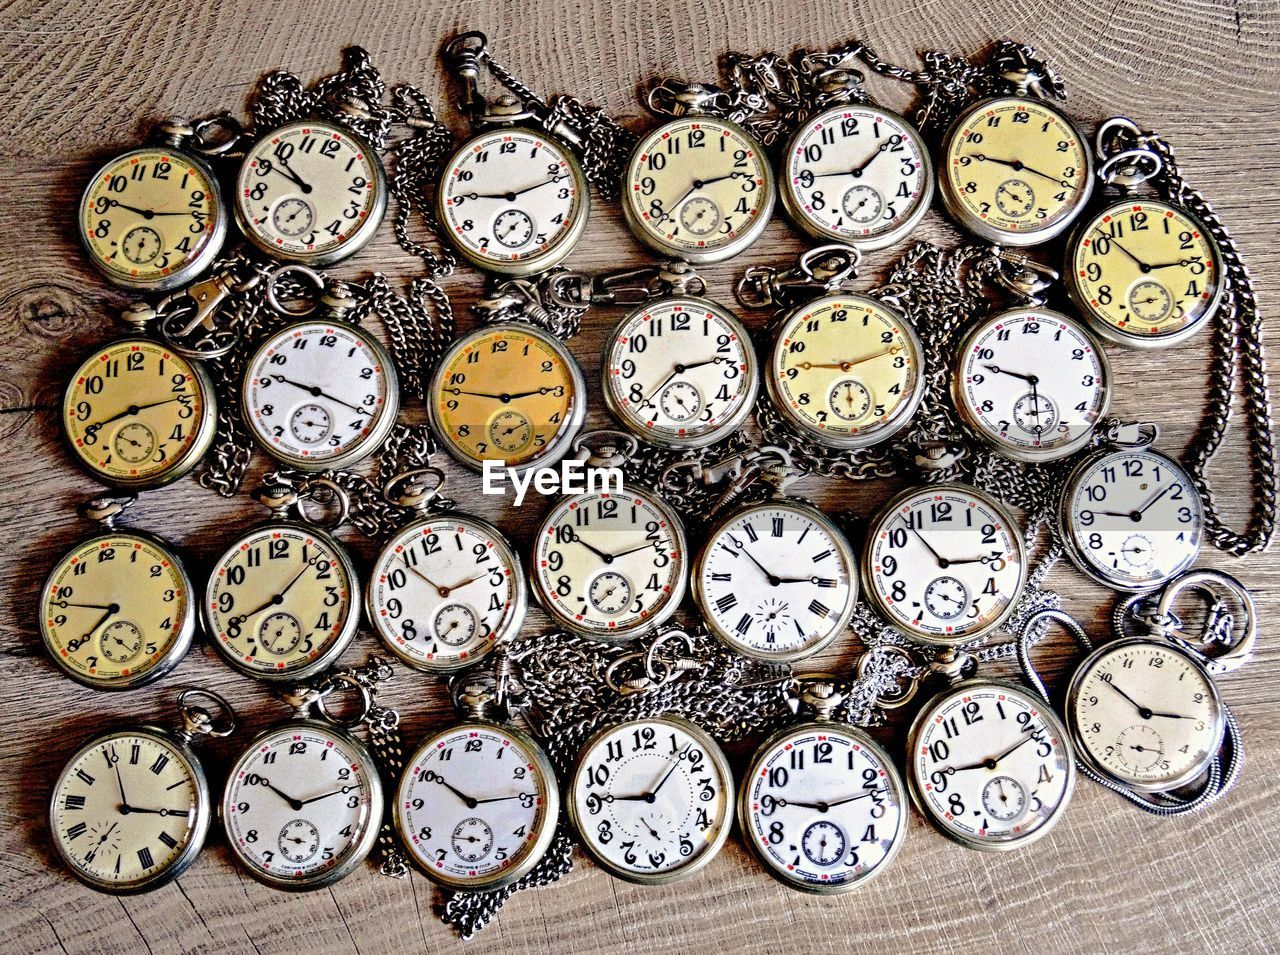 Directly above shot of pocket watches on wooden table